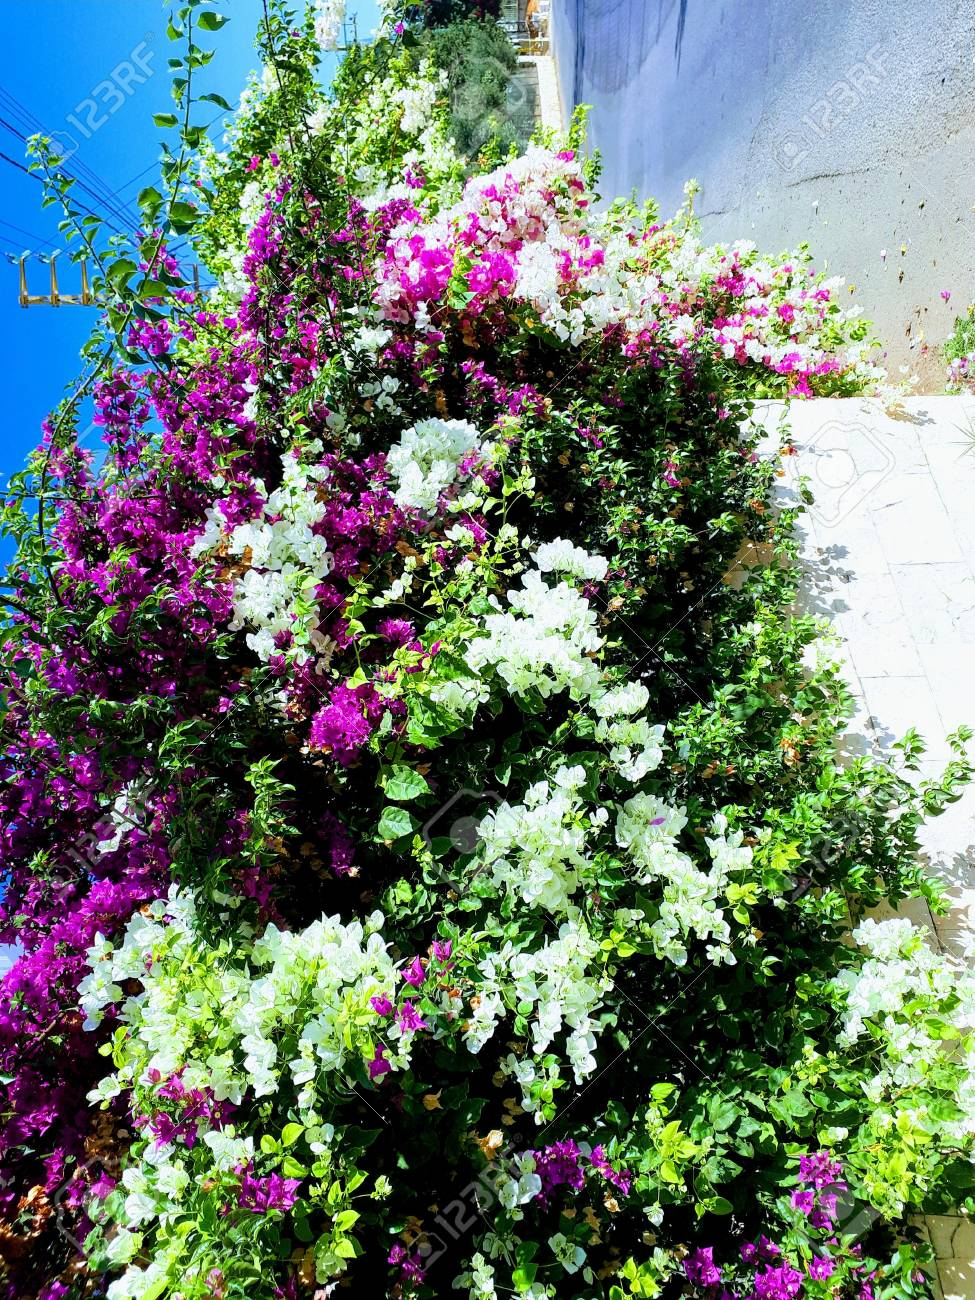 A Flower Tree That Hanging By The Wall And Filled With Pink And